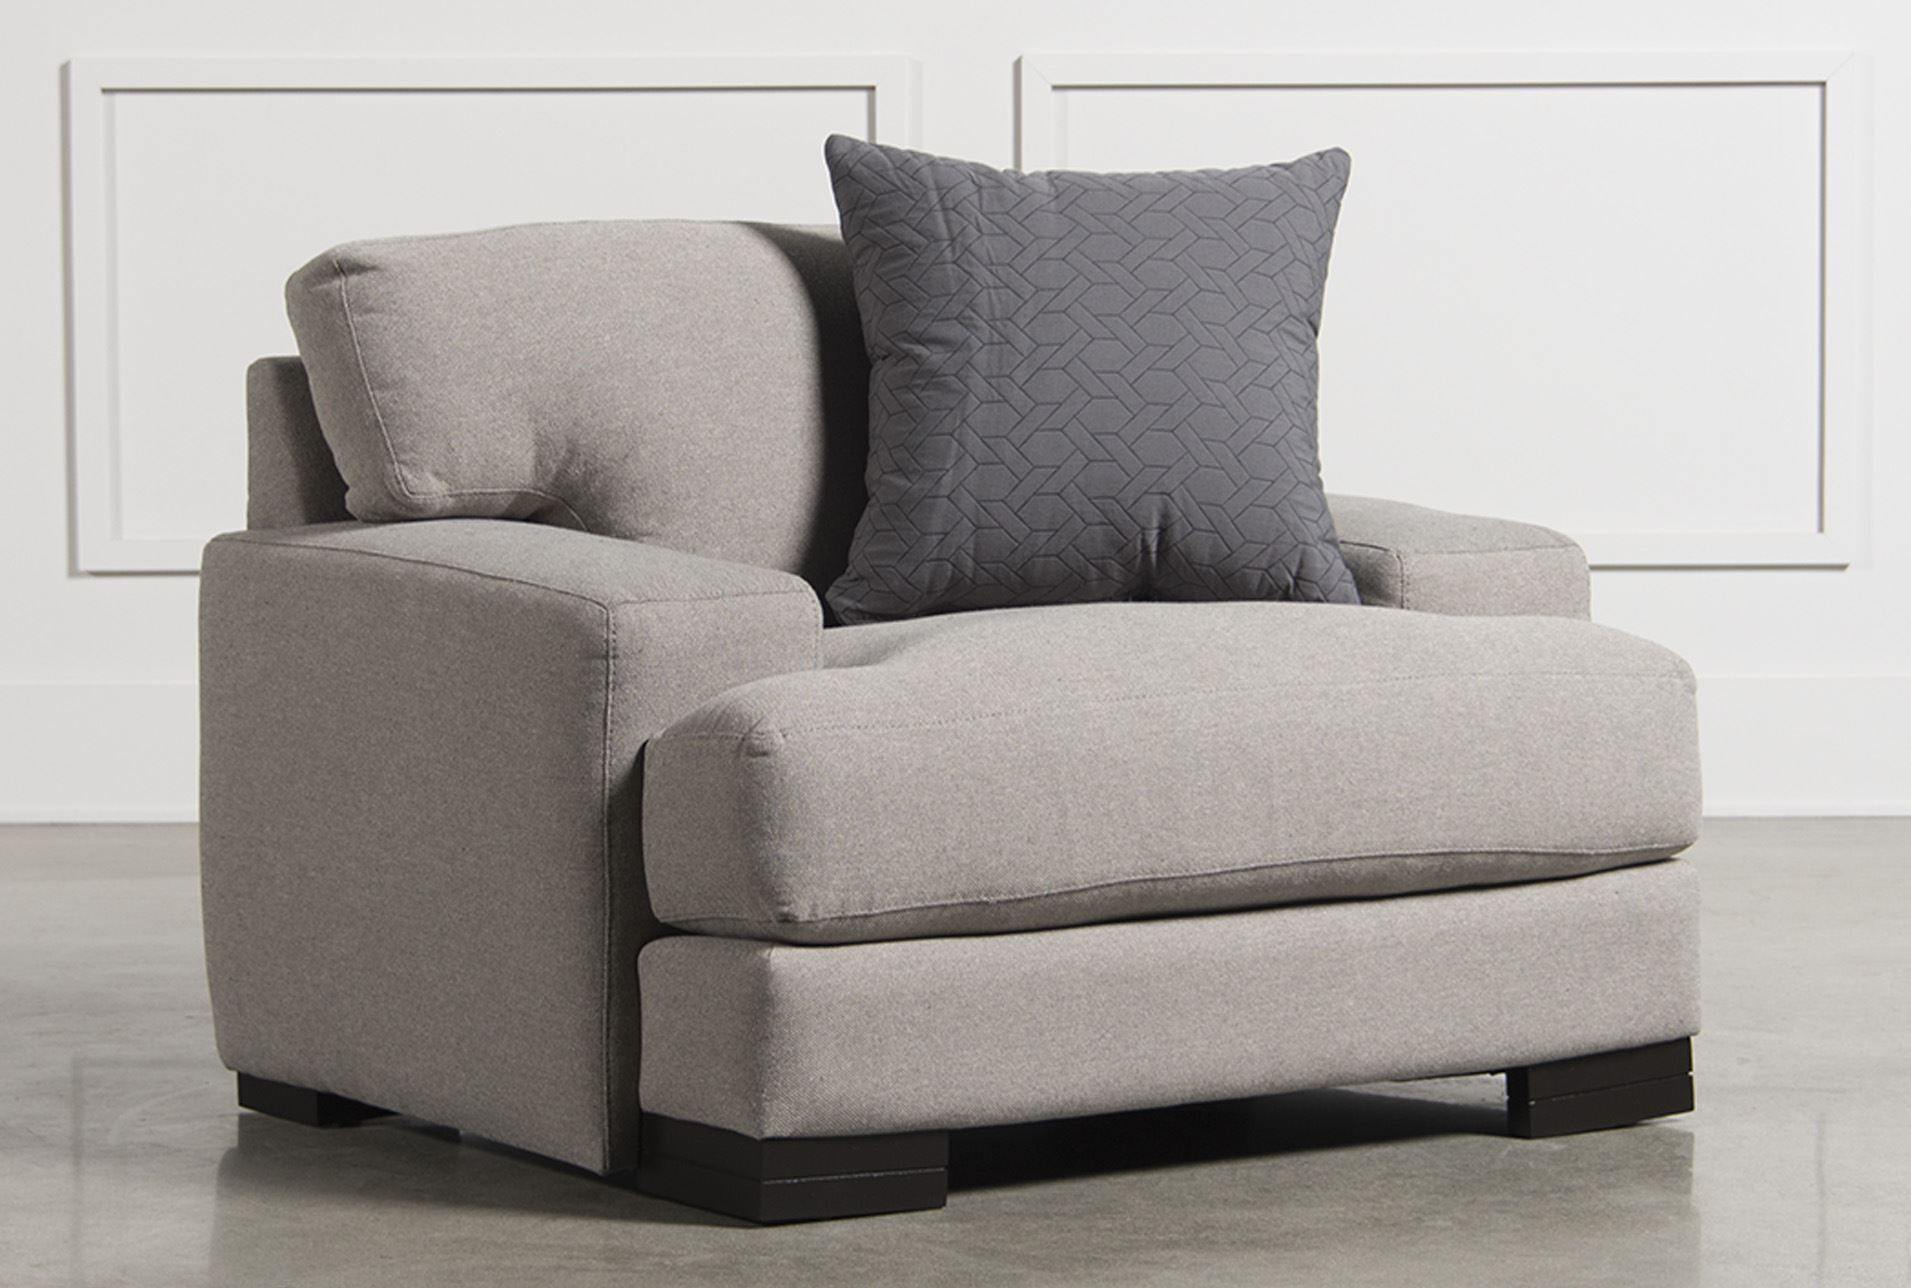 Aidan Chair | Apartment Ideas | Chair, Sofa Chair, Sofa Within Magnolia Home Dapper Fog Sofa Chairs (View 11 of 25)